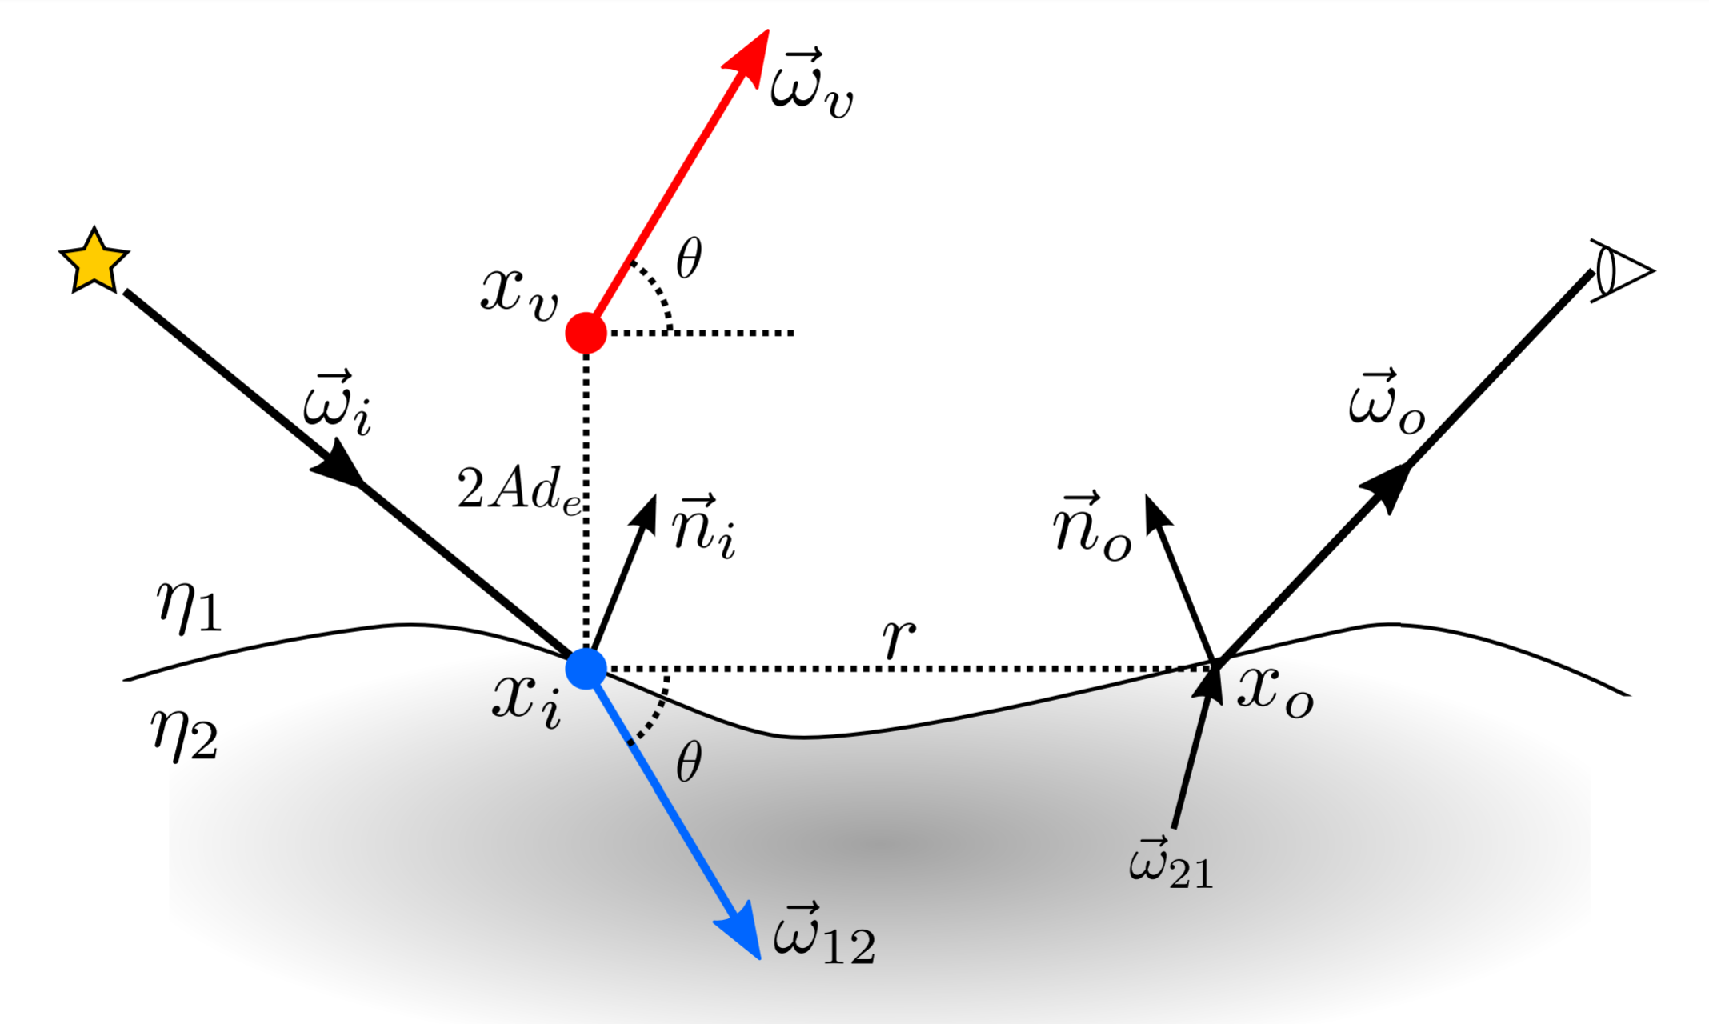 directional_dipole2.png